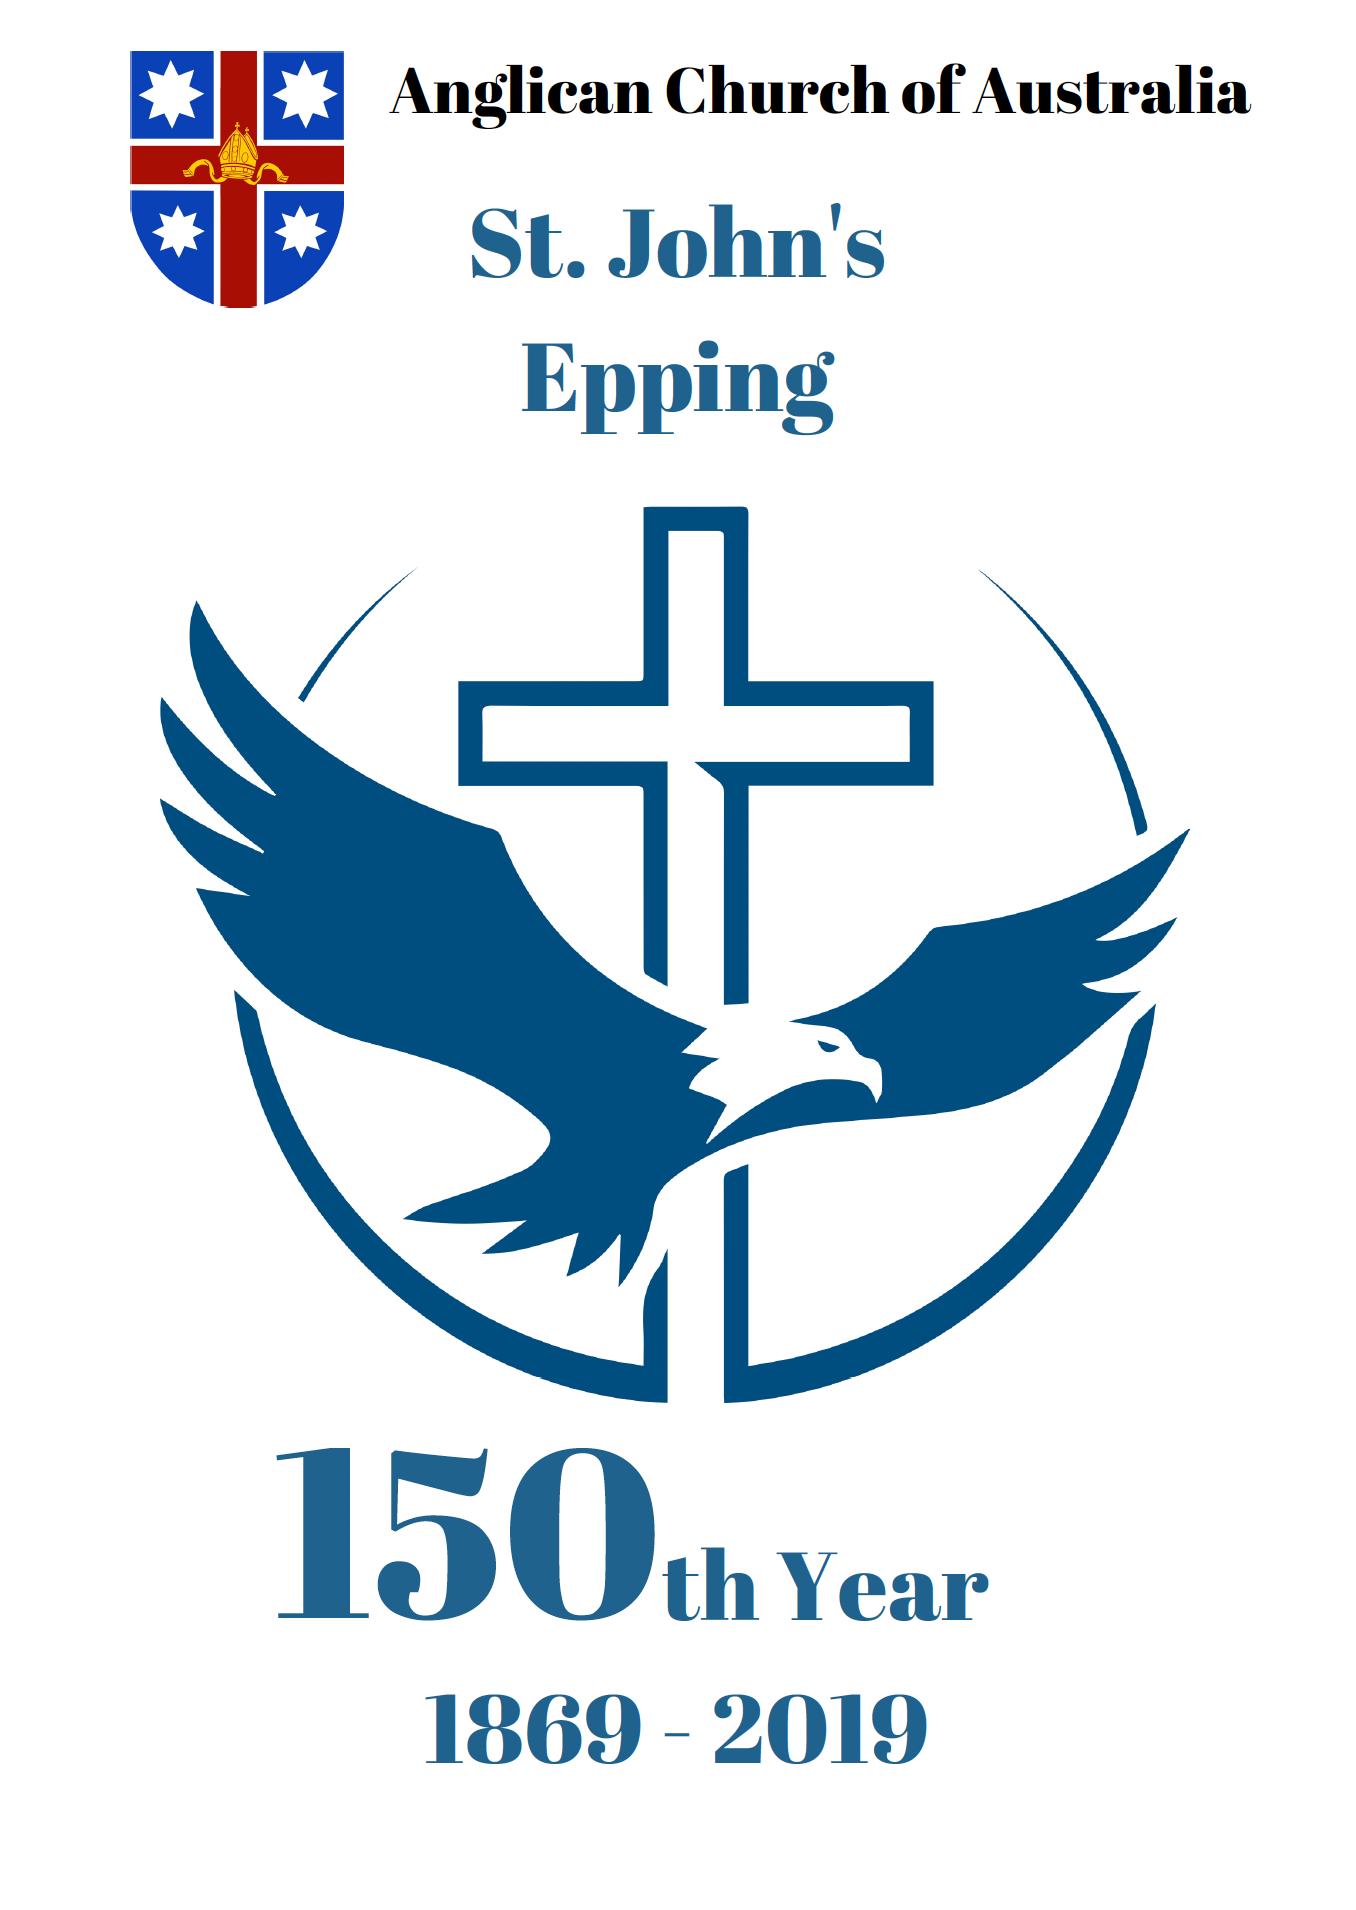 St John's 150th Anniversary Picture.png